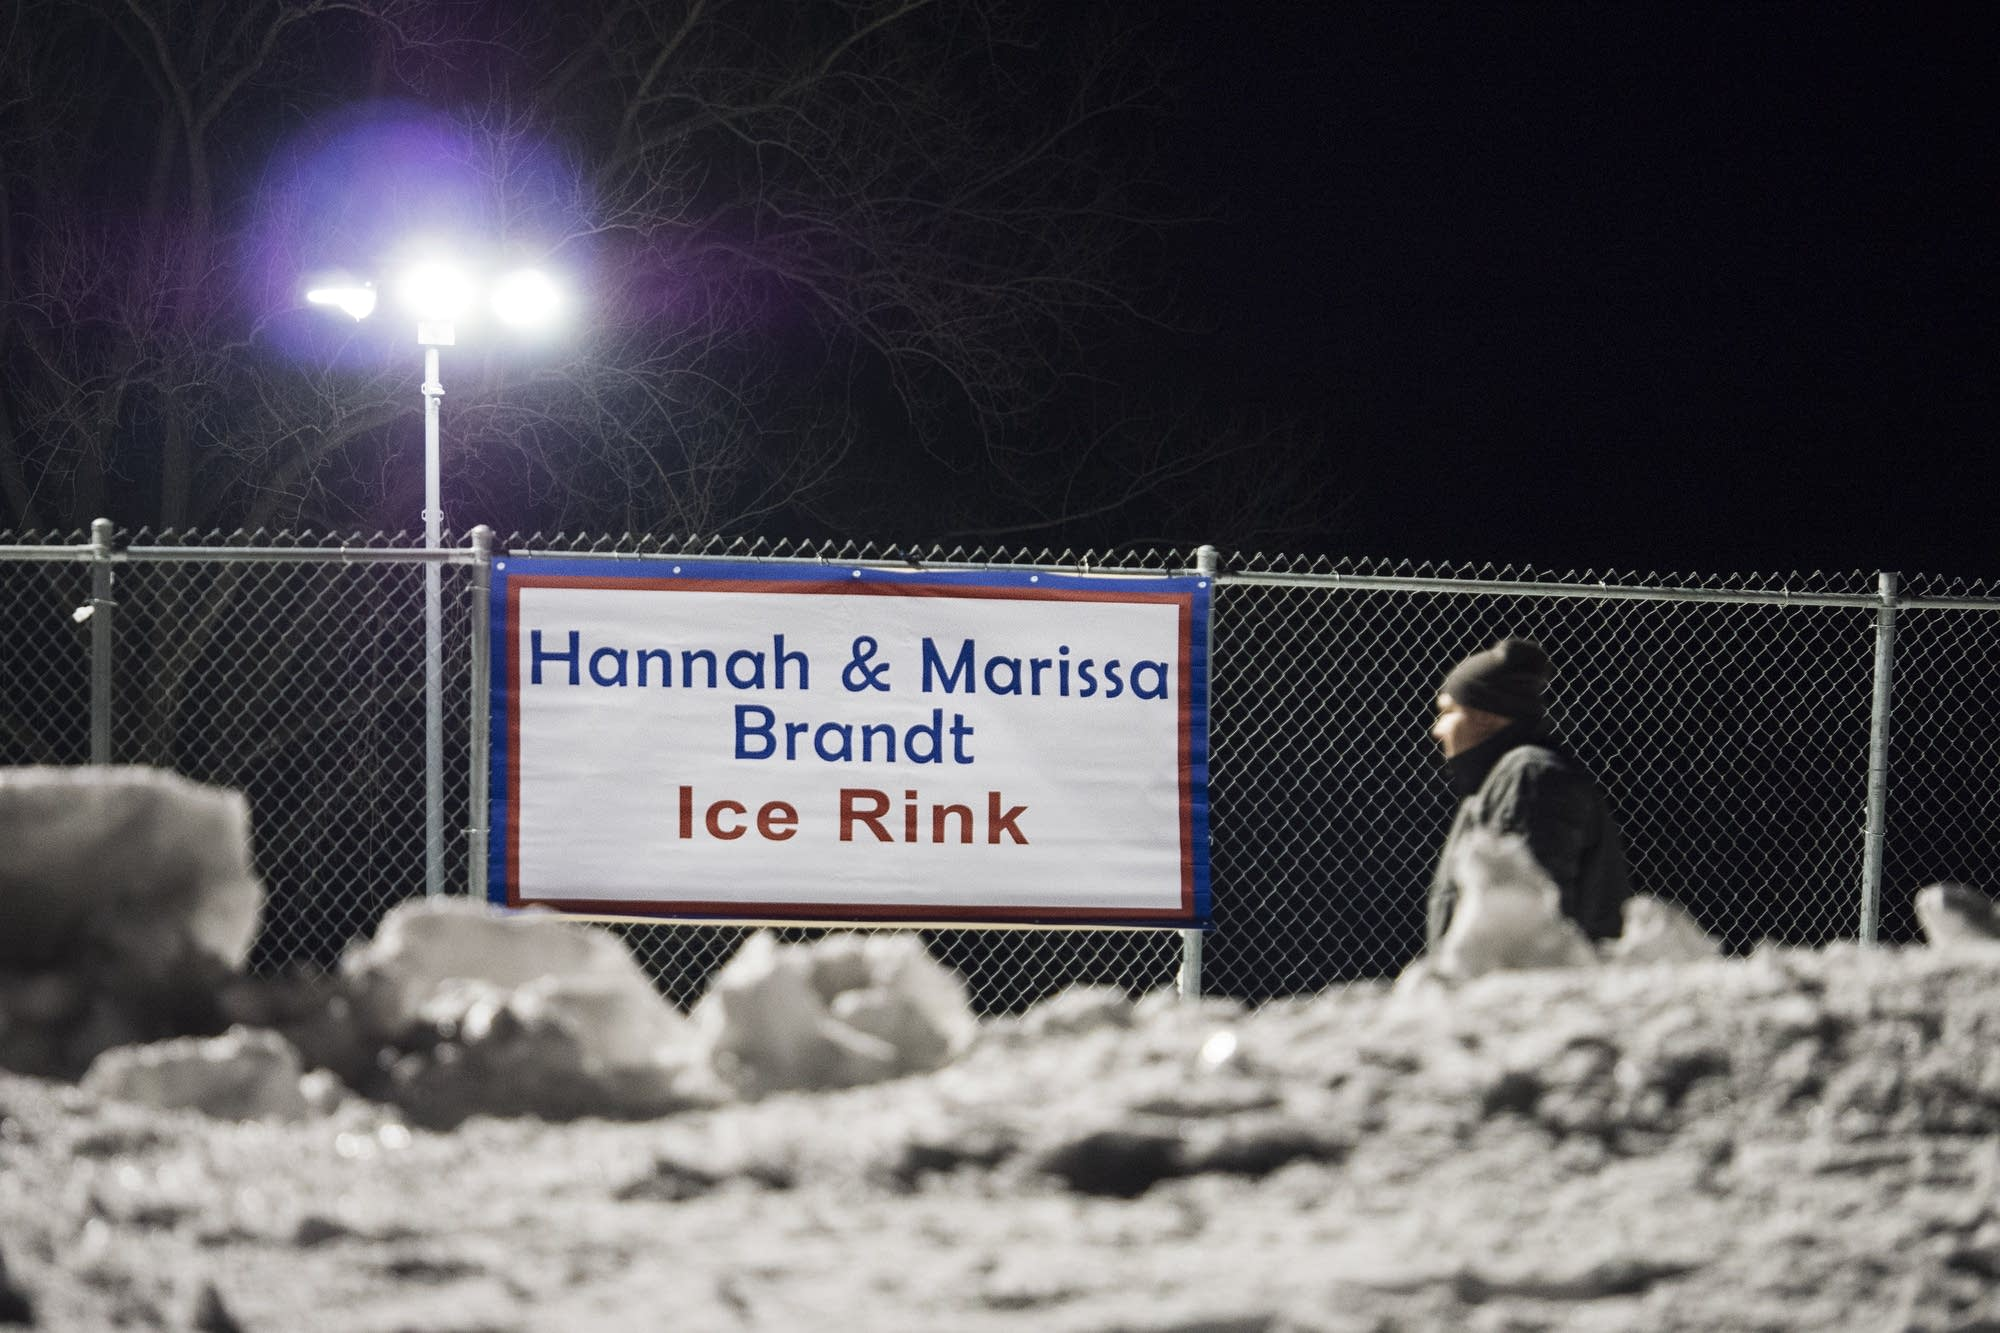 The city surprised the sisters by naming the ice rink in their honor.